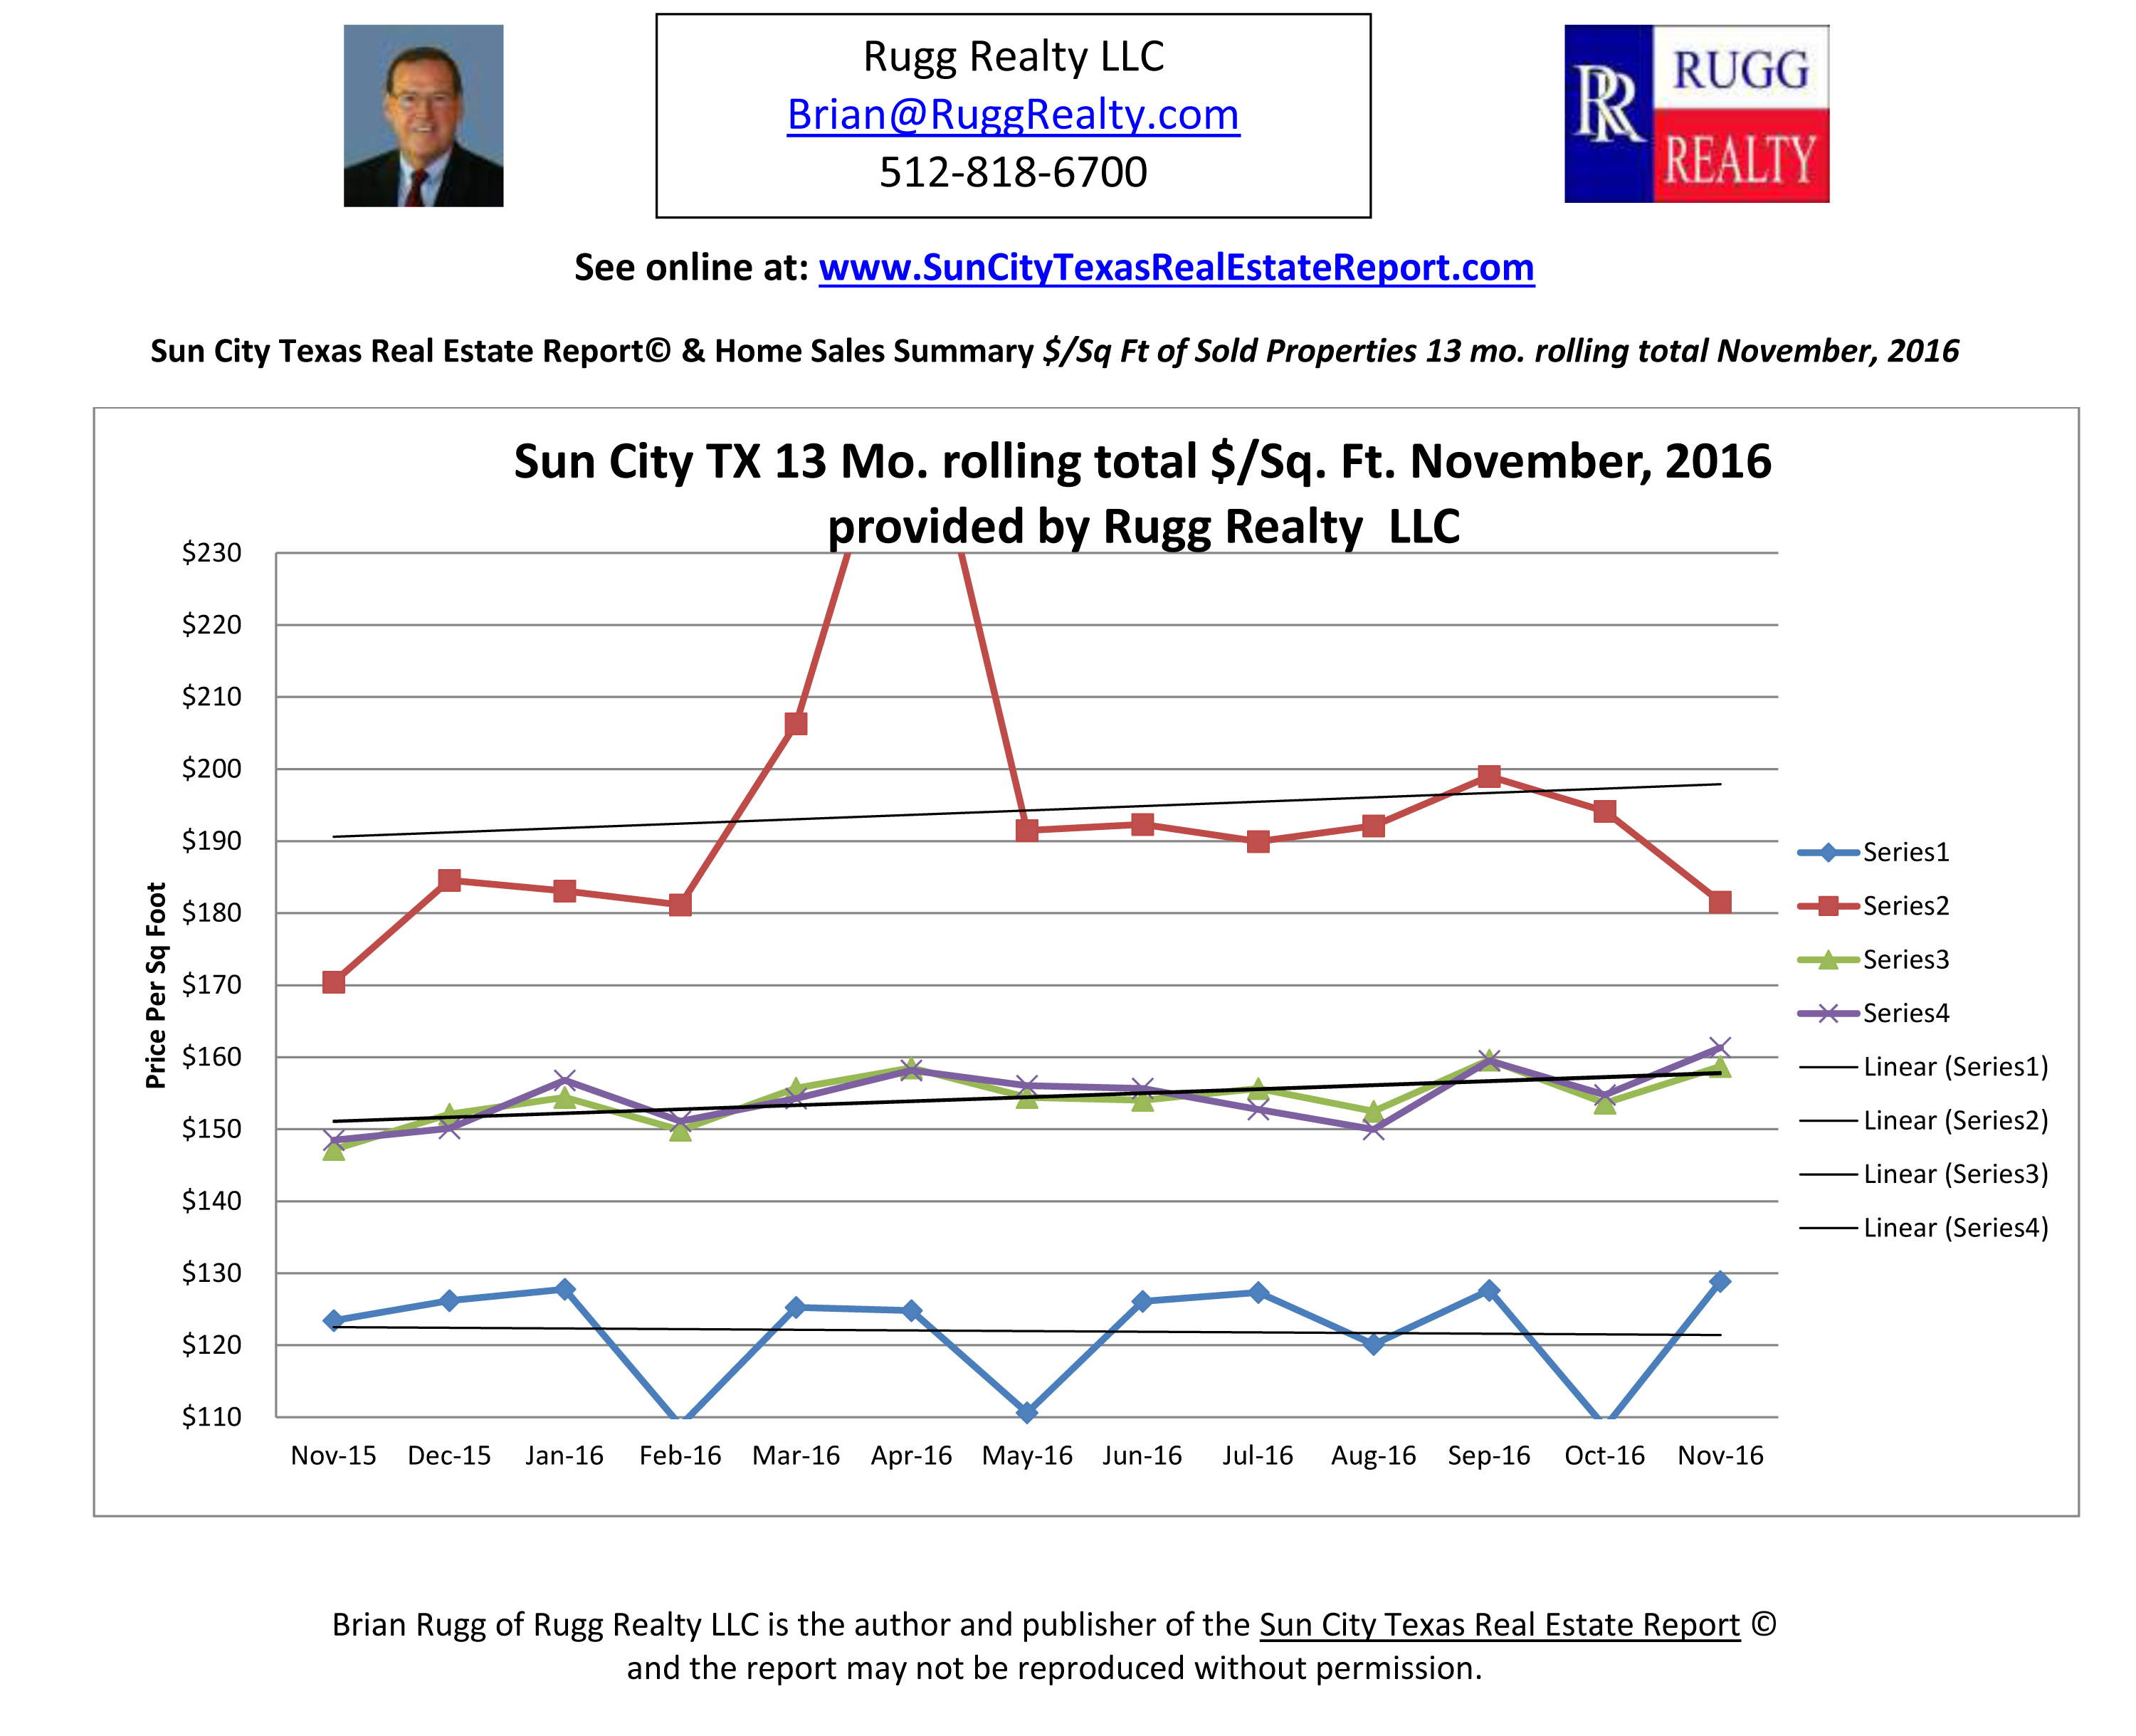 Latest 11/16 Price Per Square Foot Sales Data Sun City TX-Rugg Realty